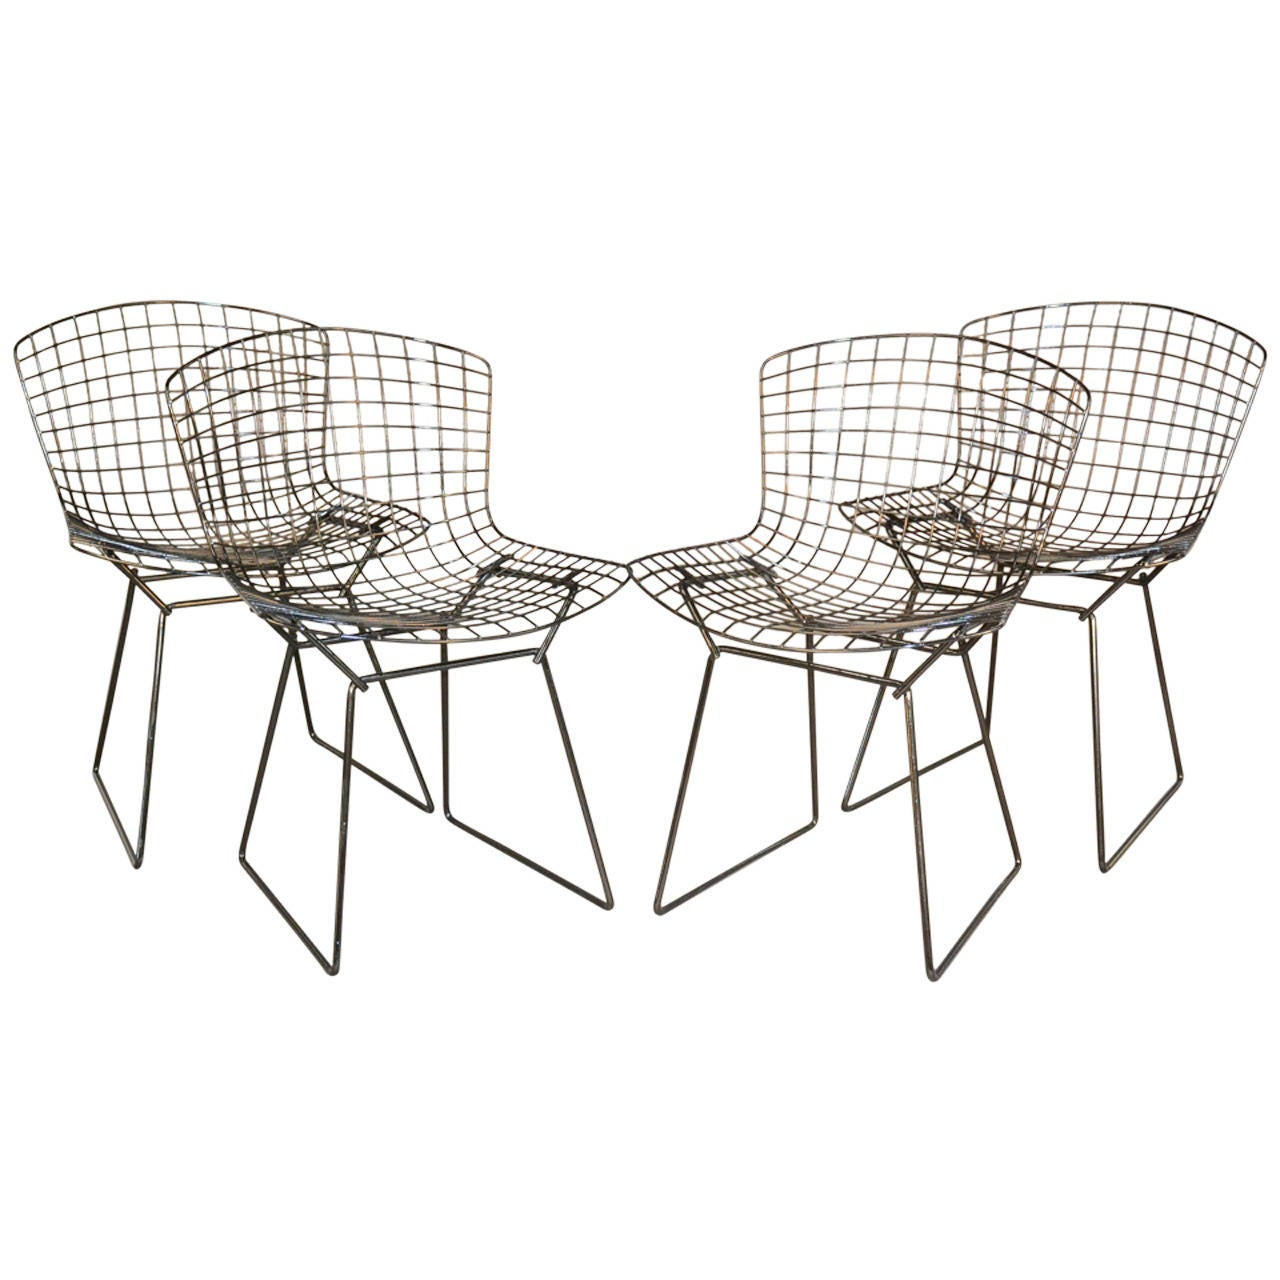 Harry Bertoia for Knoll dining chairs, 1970s